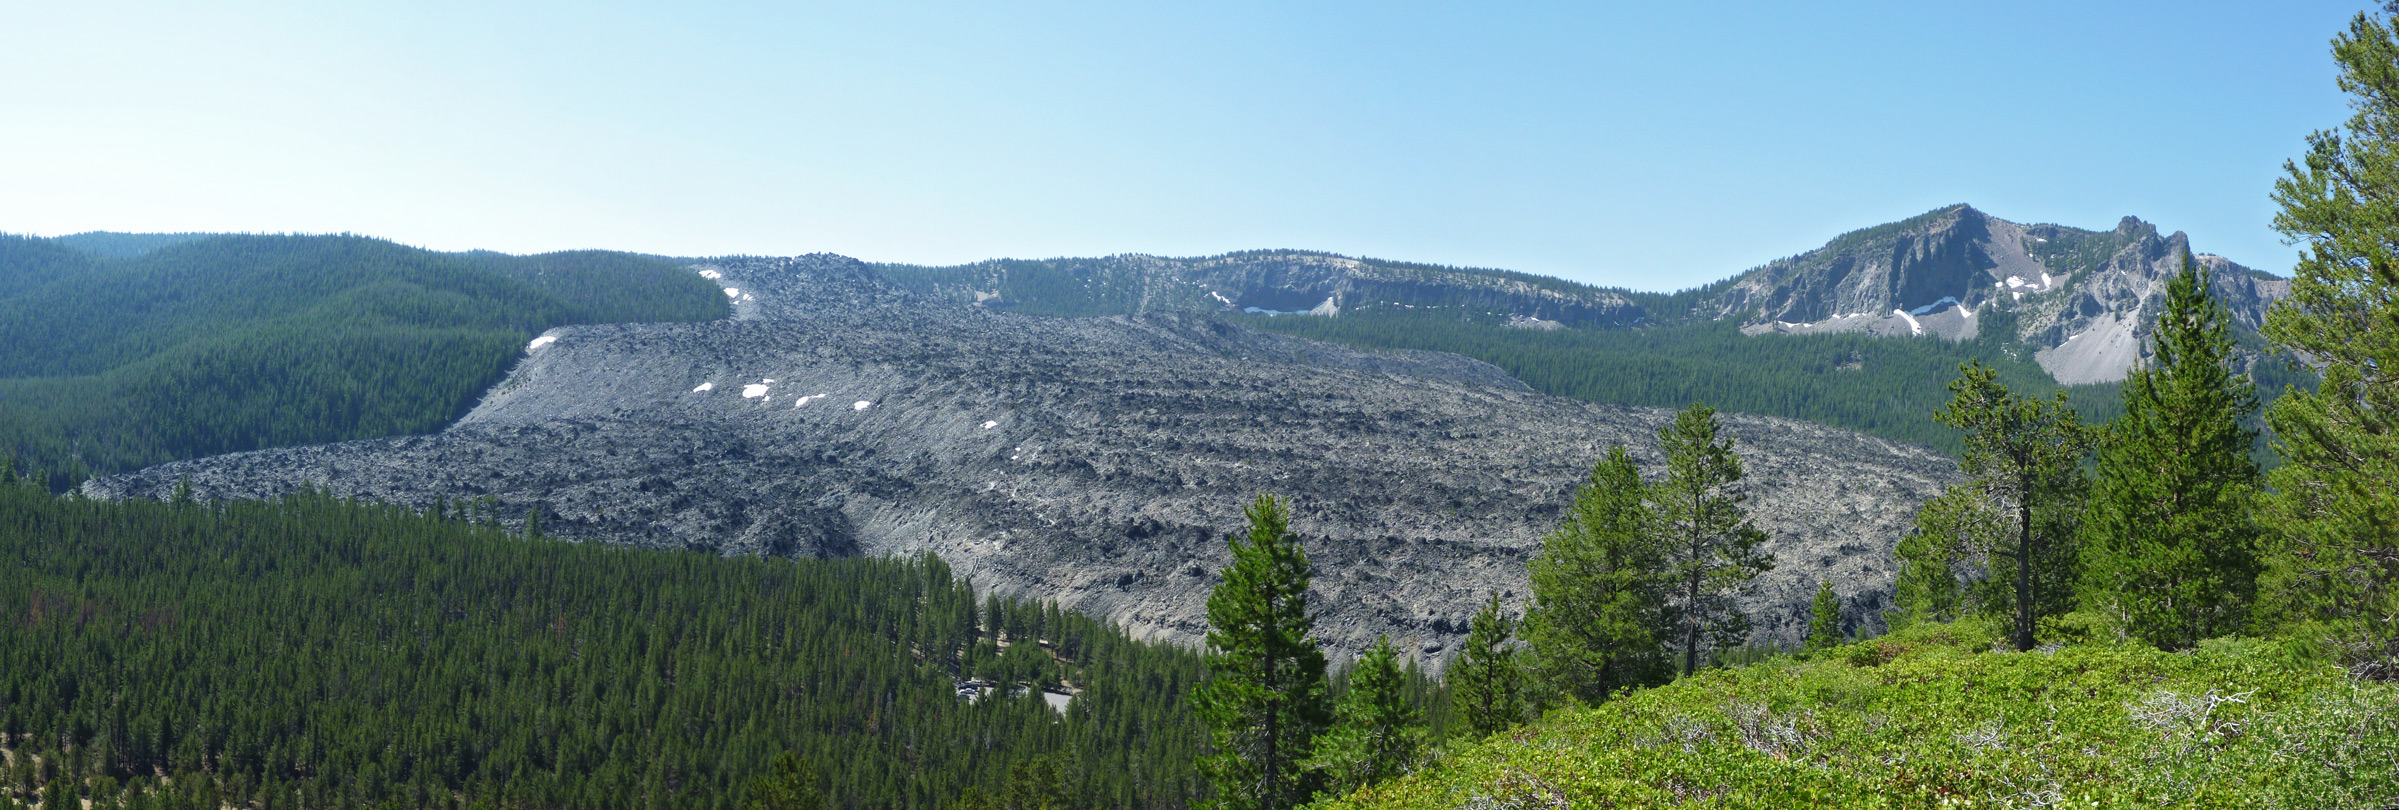 Big Obsidian Flow, along the Little Crater Trail